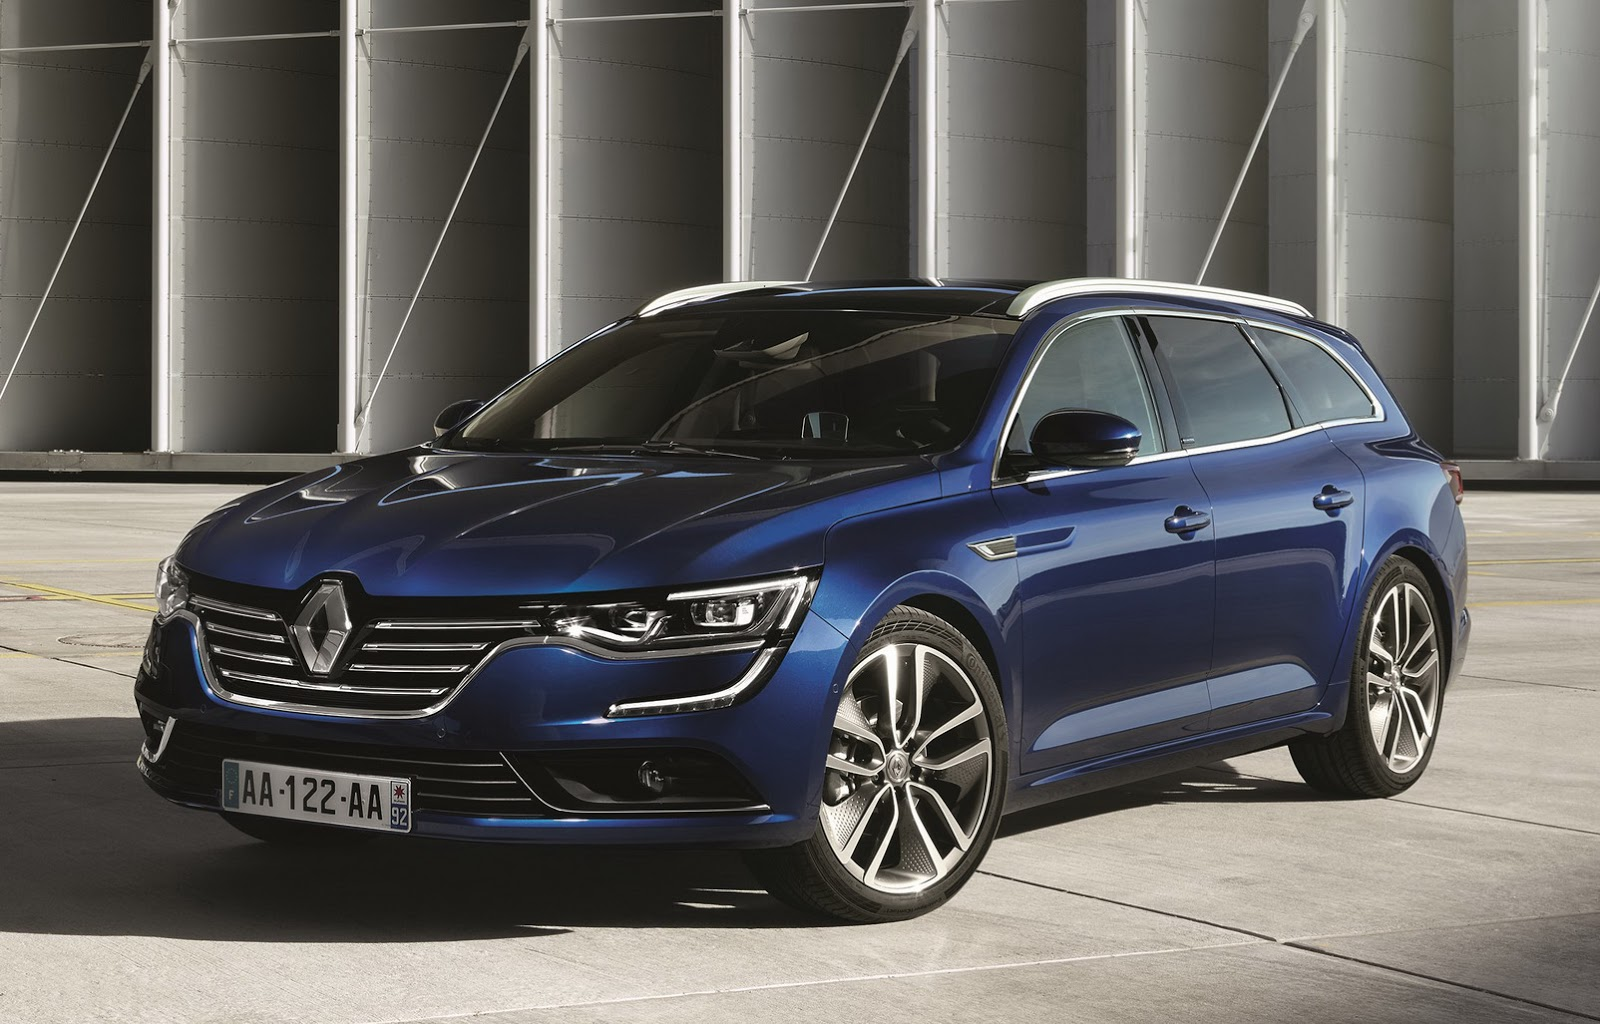 2016 renault talisman estate revealed in full brings racy styling to eco families autoevolution. Black Bedroom Furniture Sets. Home Design Ideas